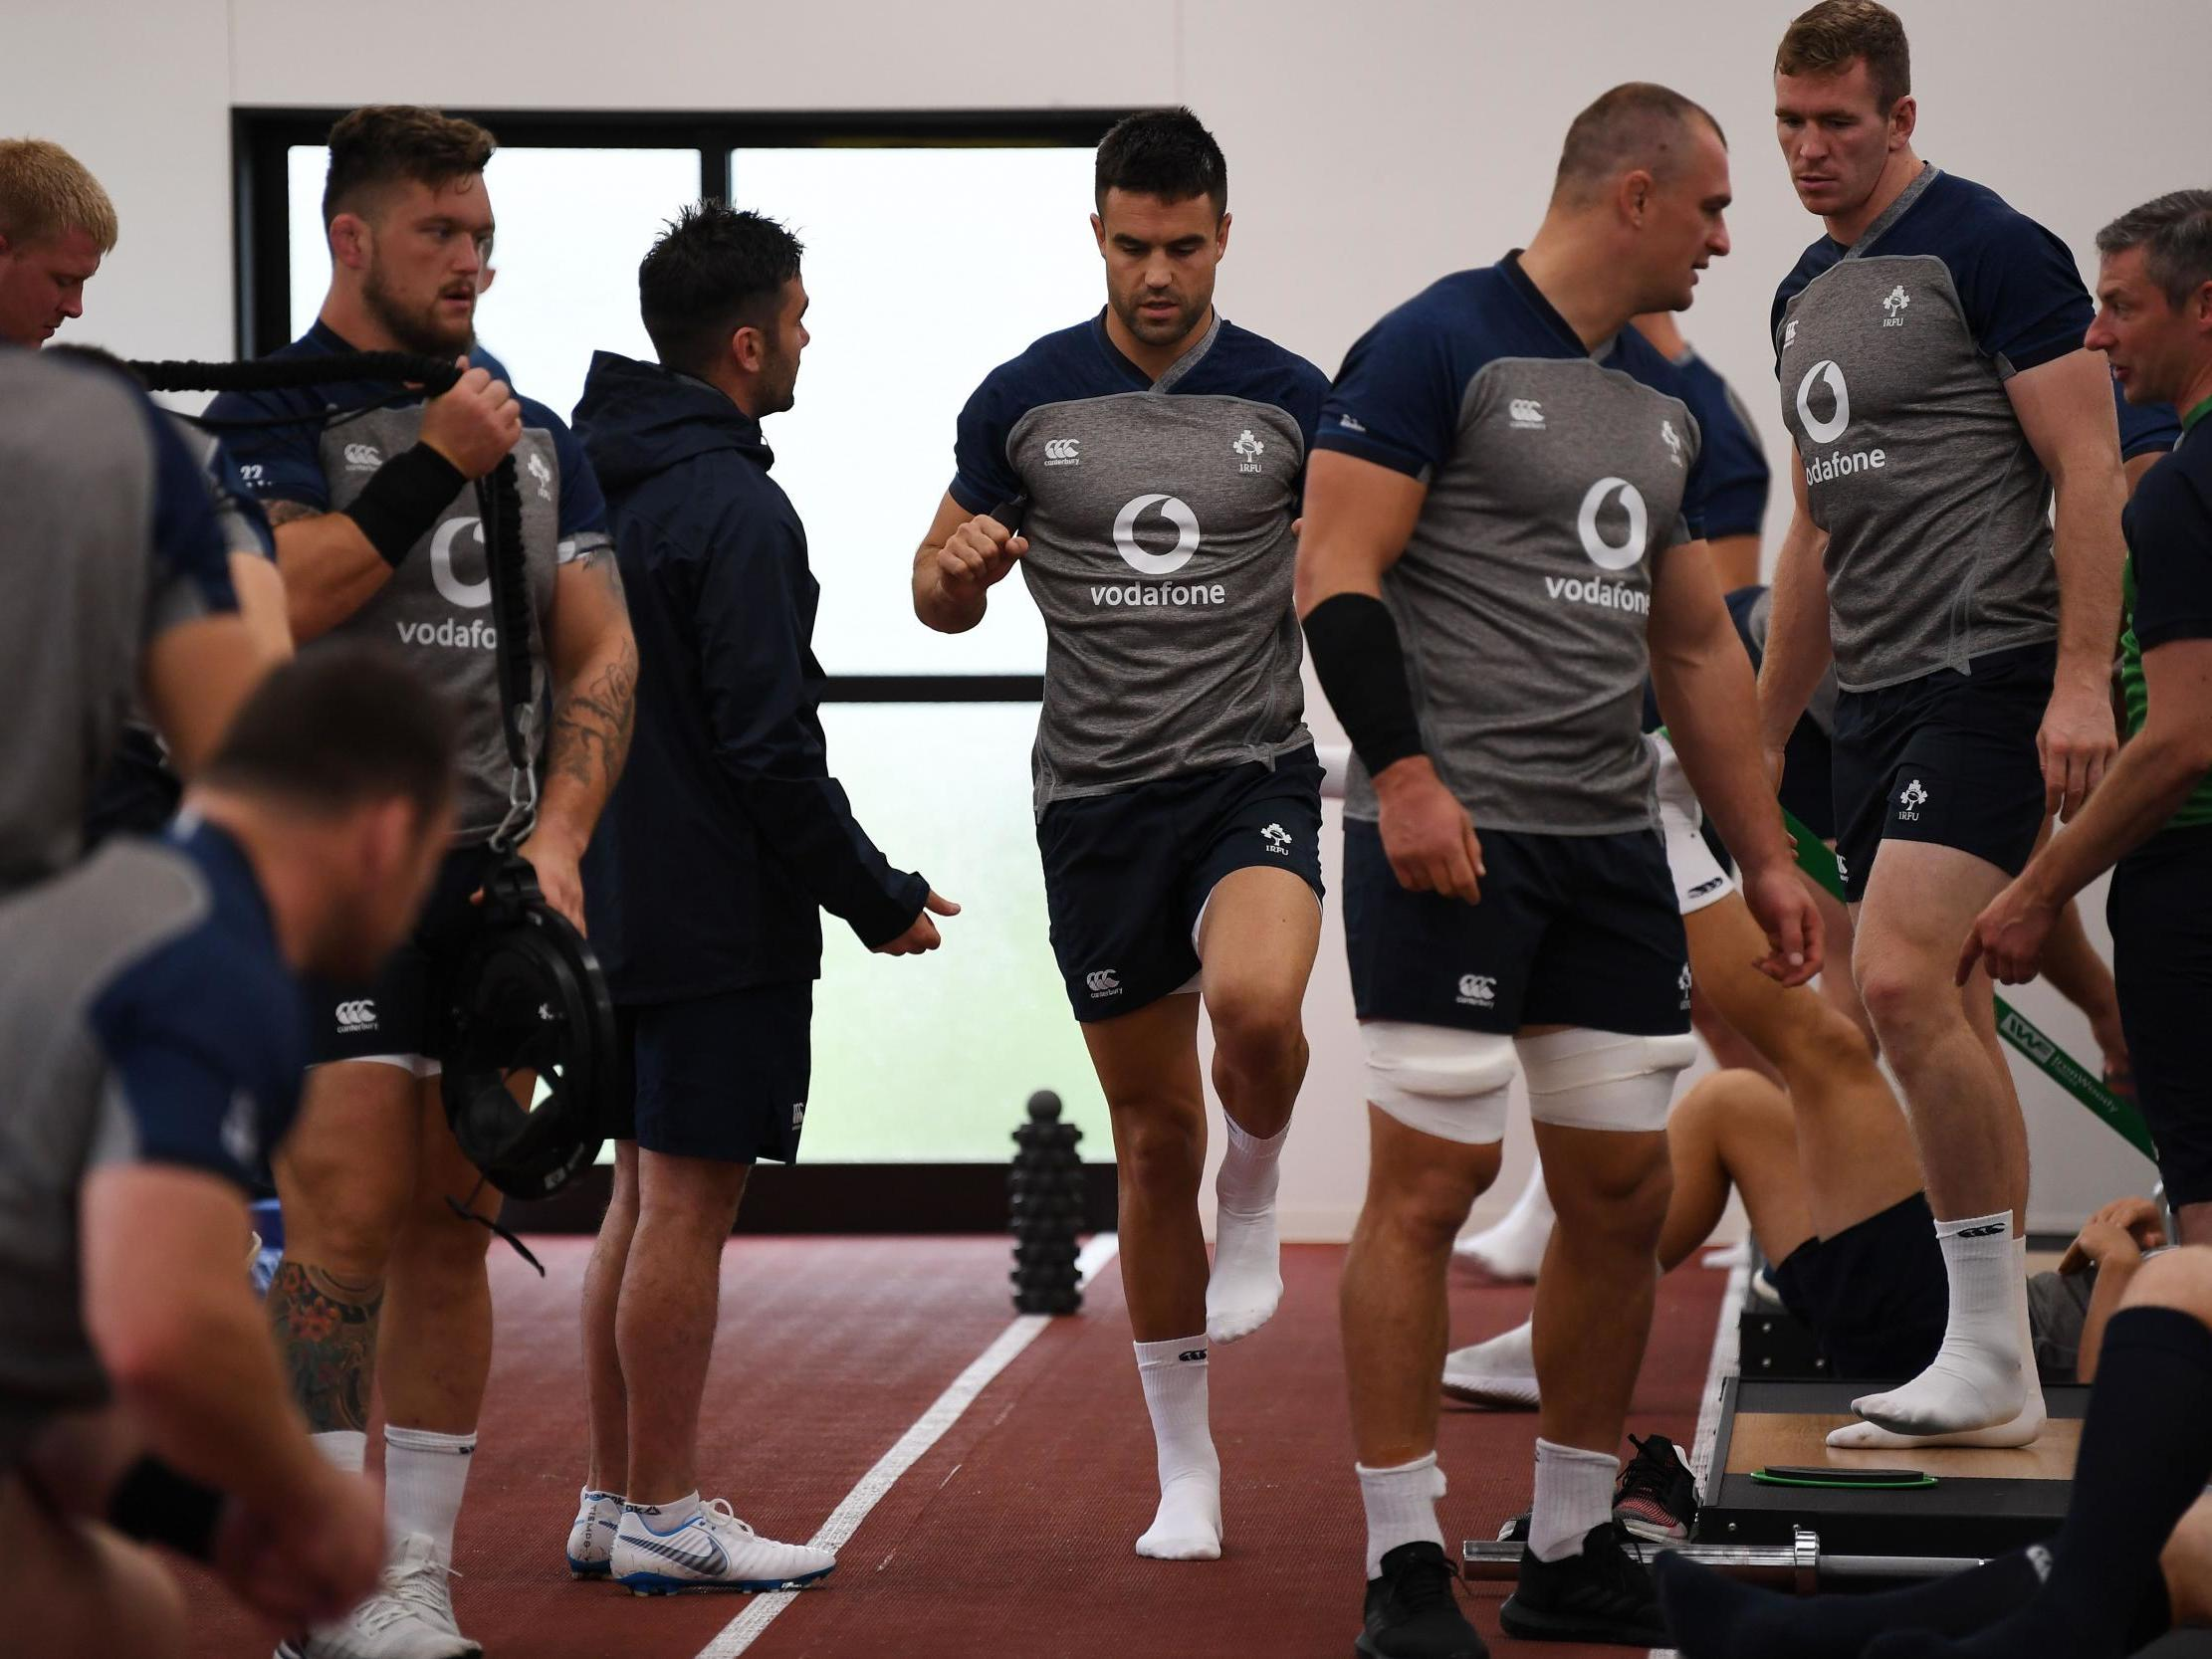 Rugby World Cup 2019 – Ireland vs Scotland: Where to watch and live stream, kick-off time, squads and prediction